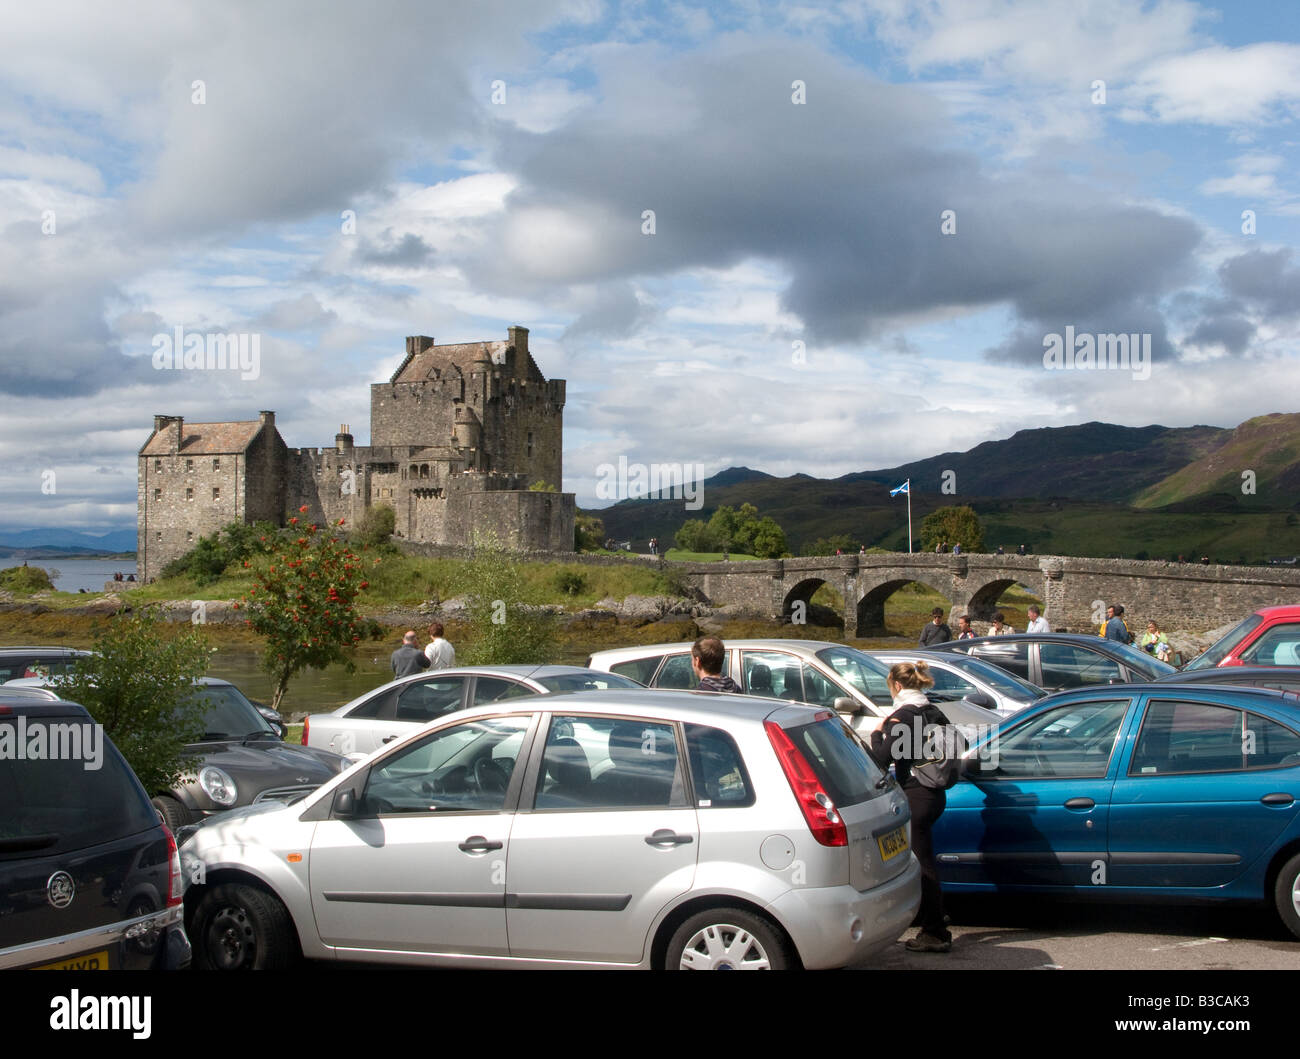 The tourist cars in the car park of Eilean Donan Castle. - Stock Image